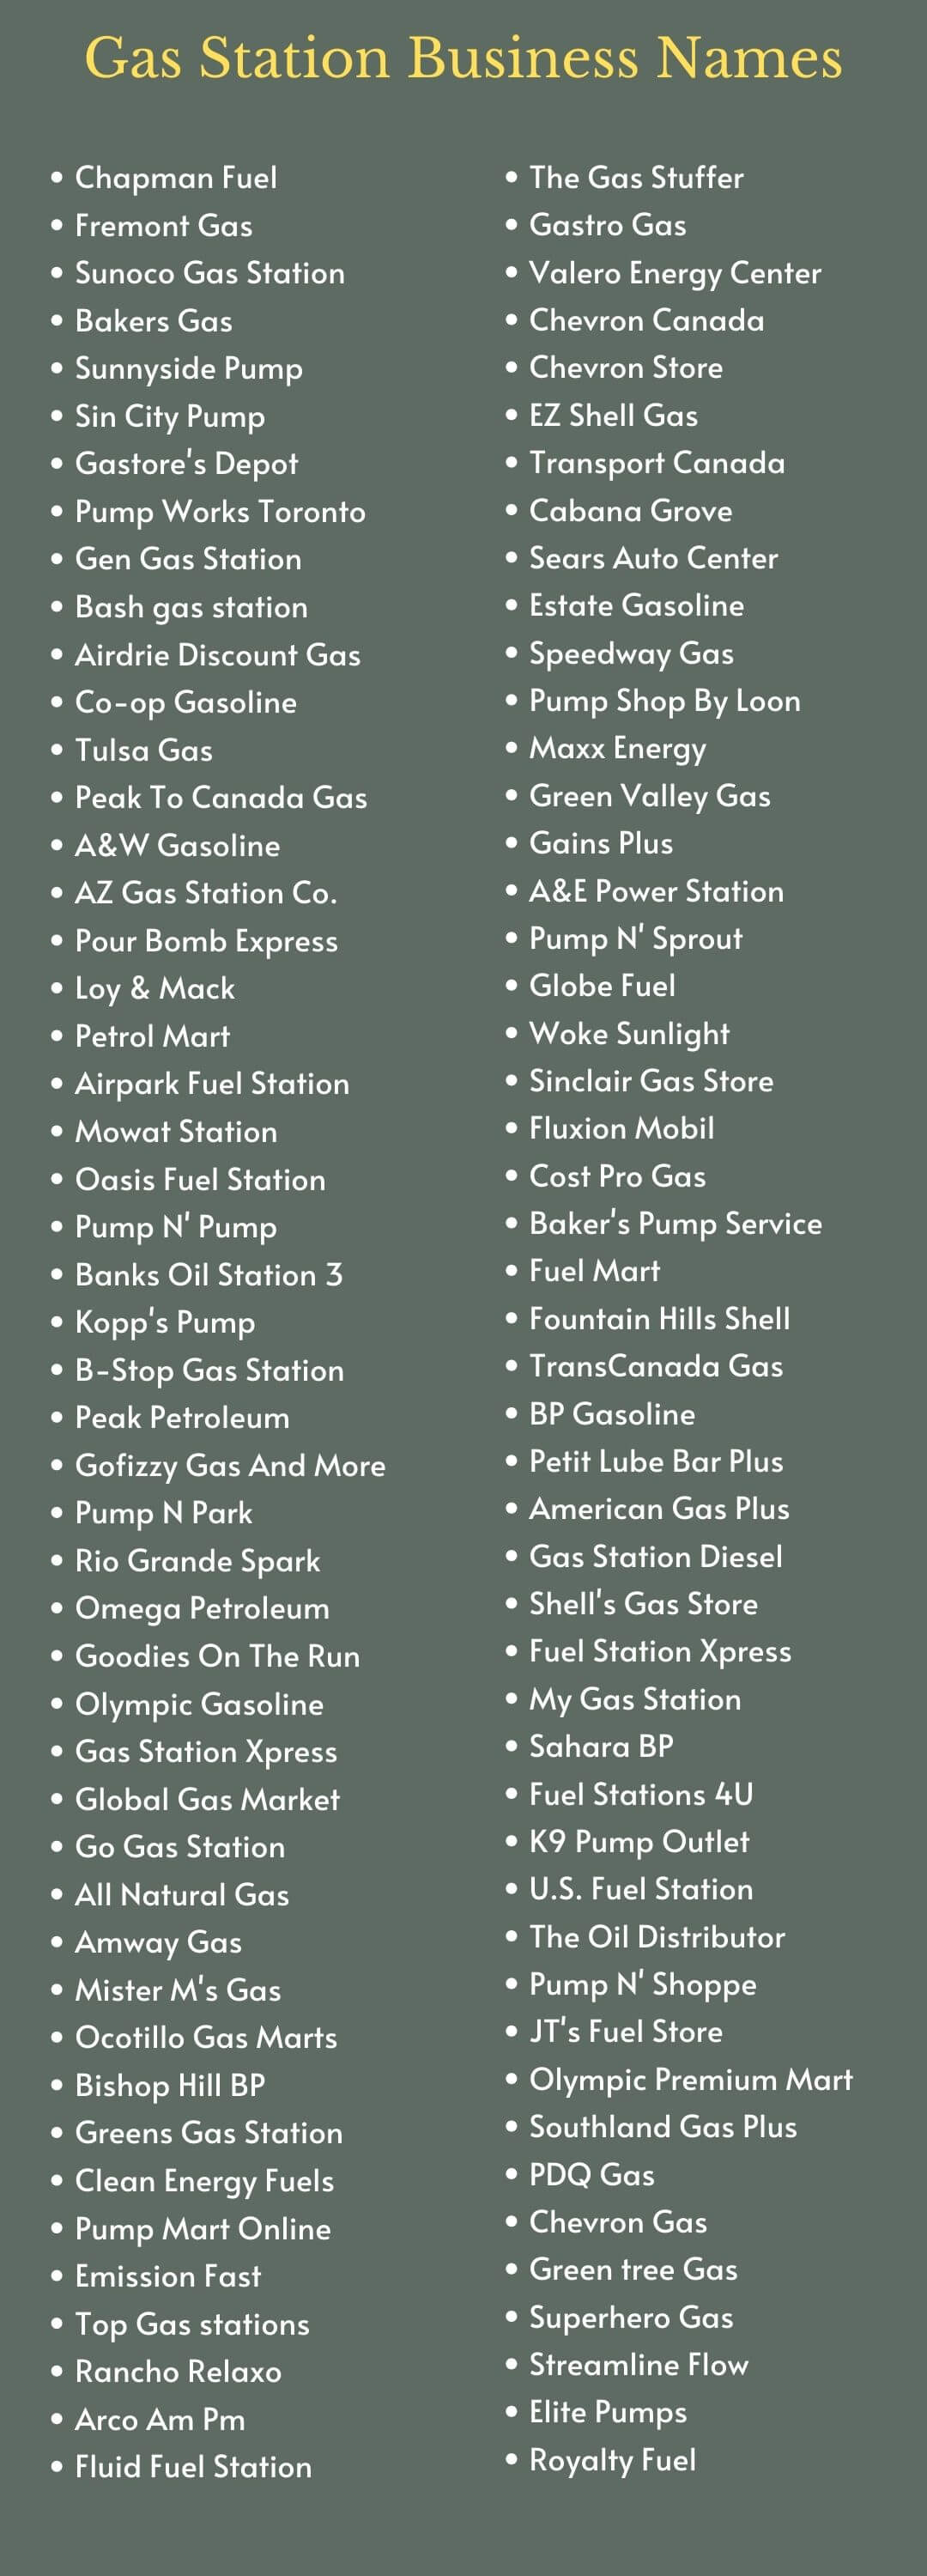 Gas Station Business Names